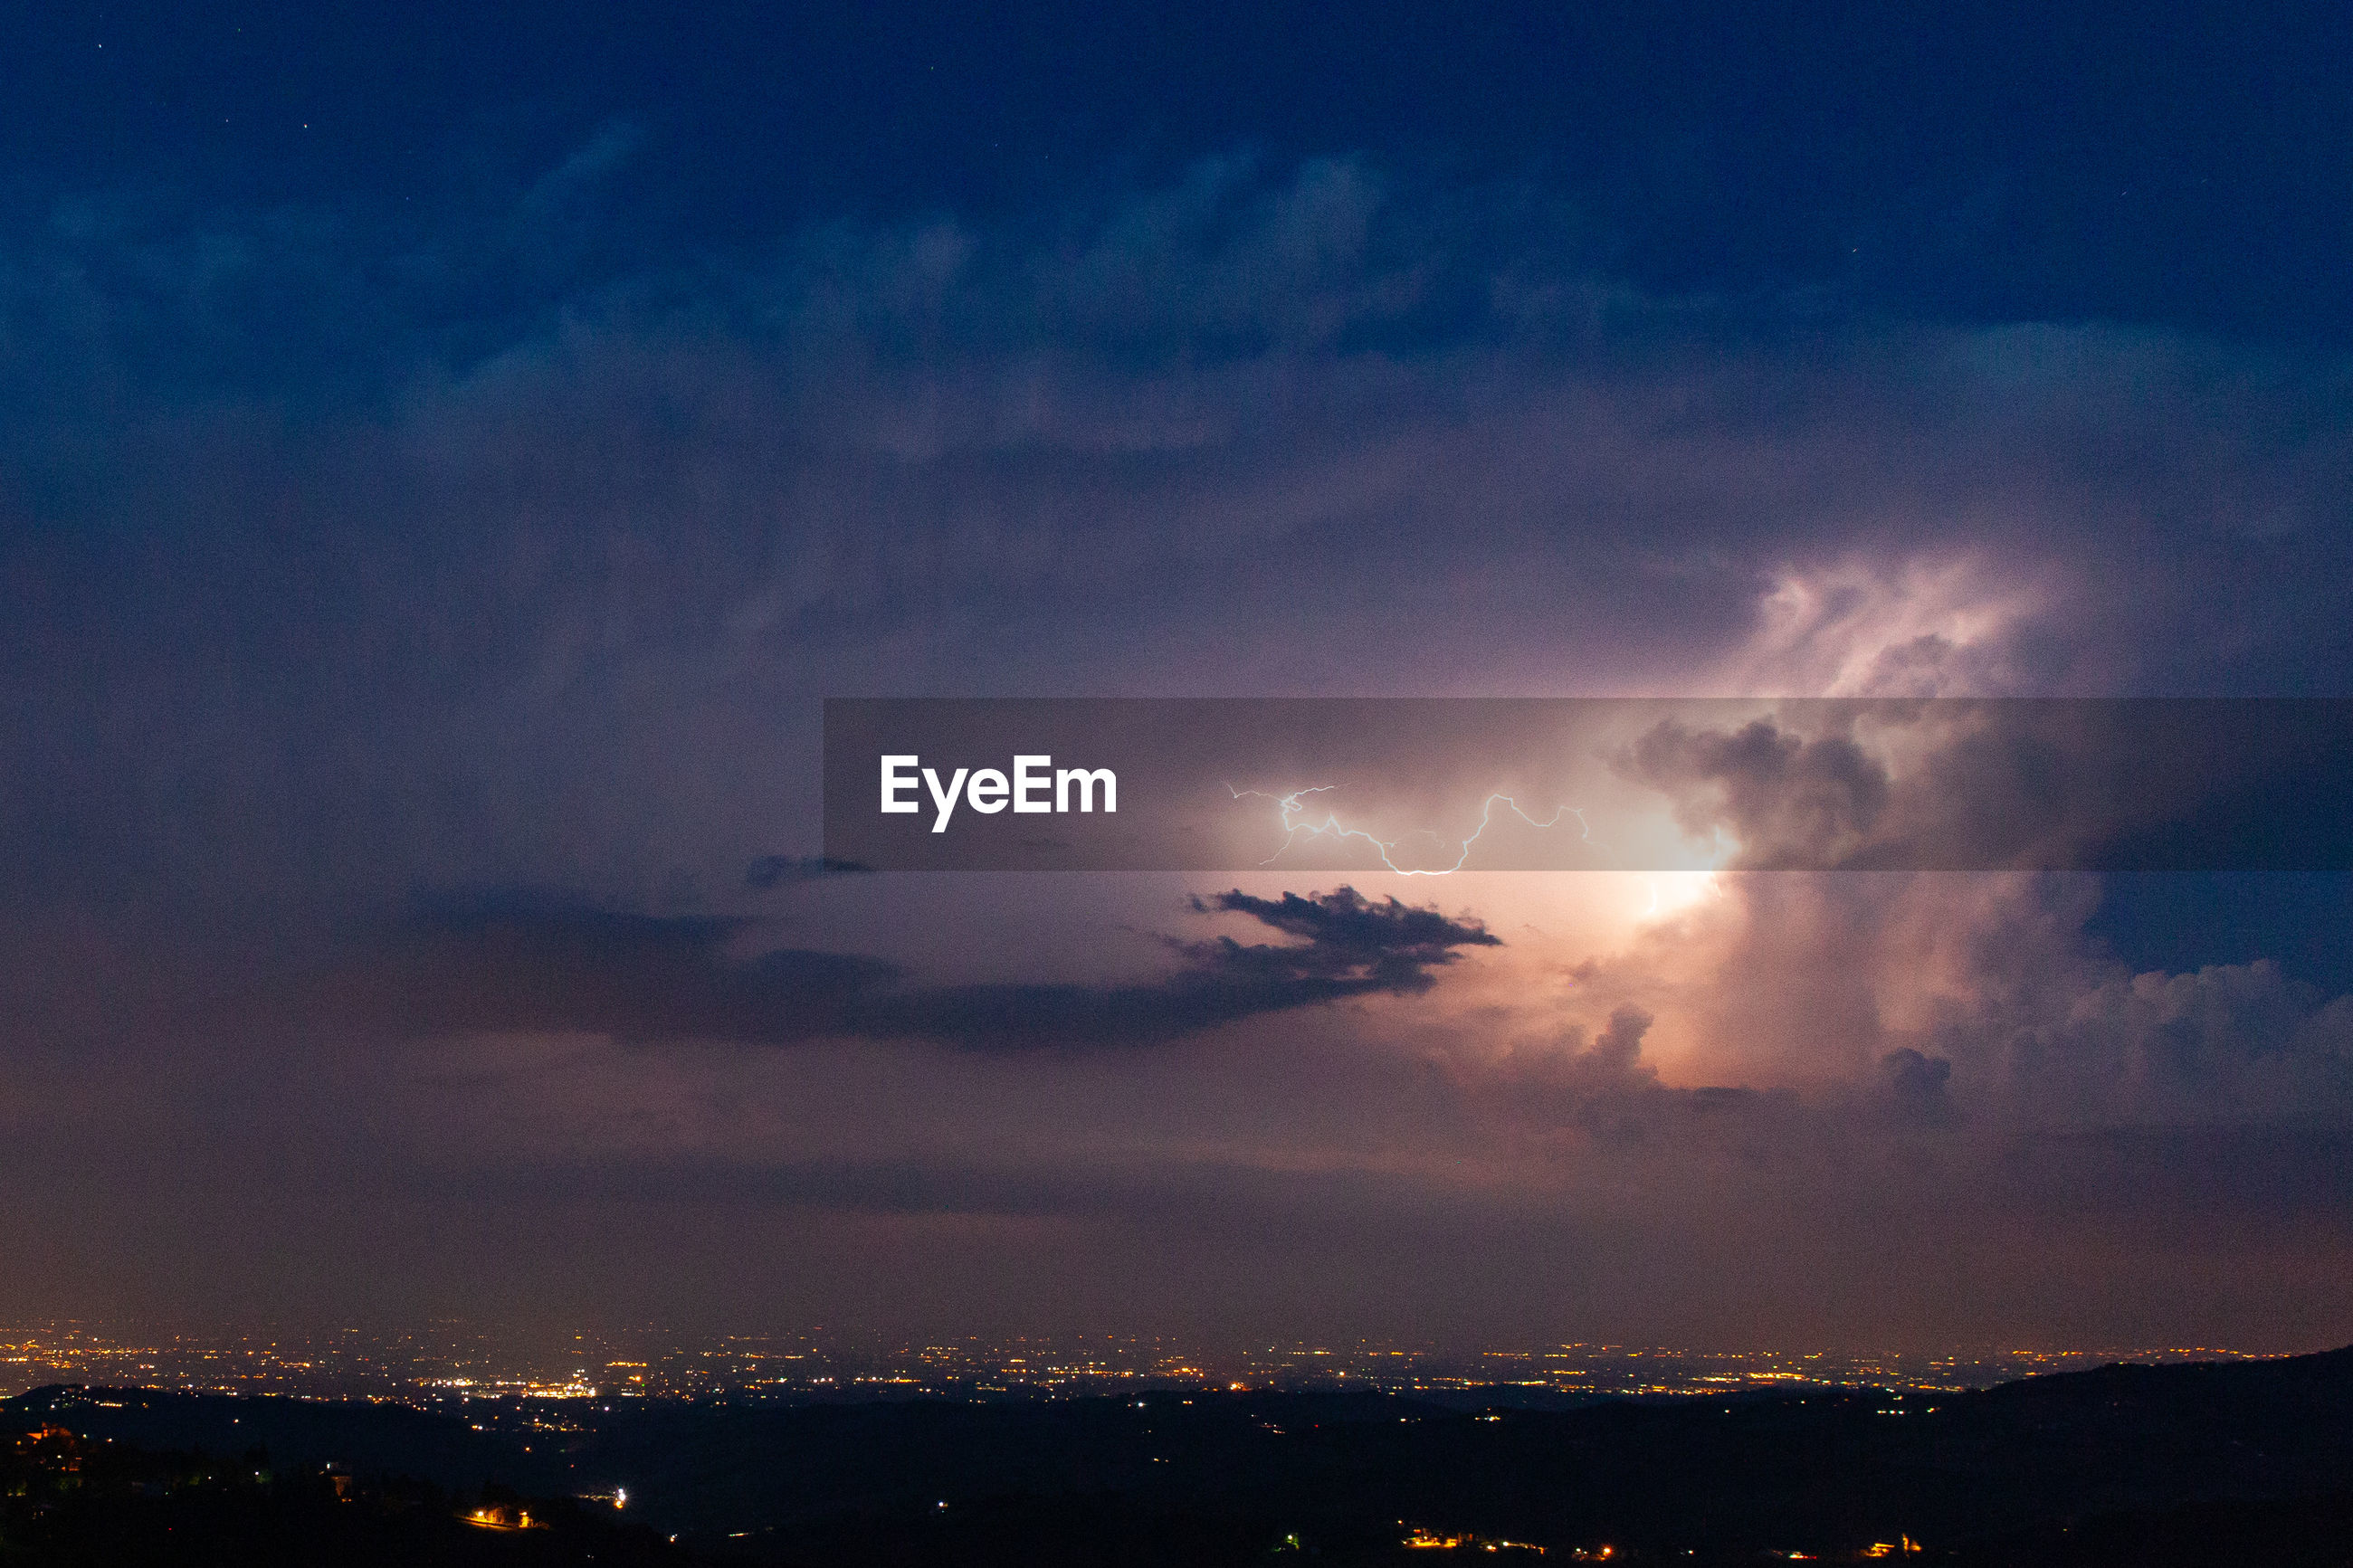 A summer night big thunderstorm on the plain around modena and bologna in italy